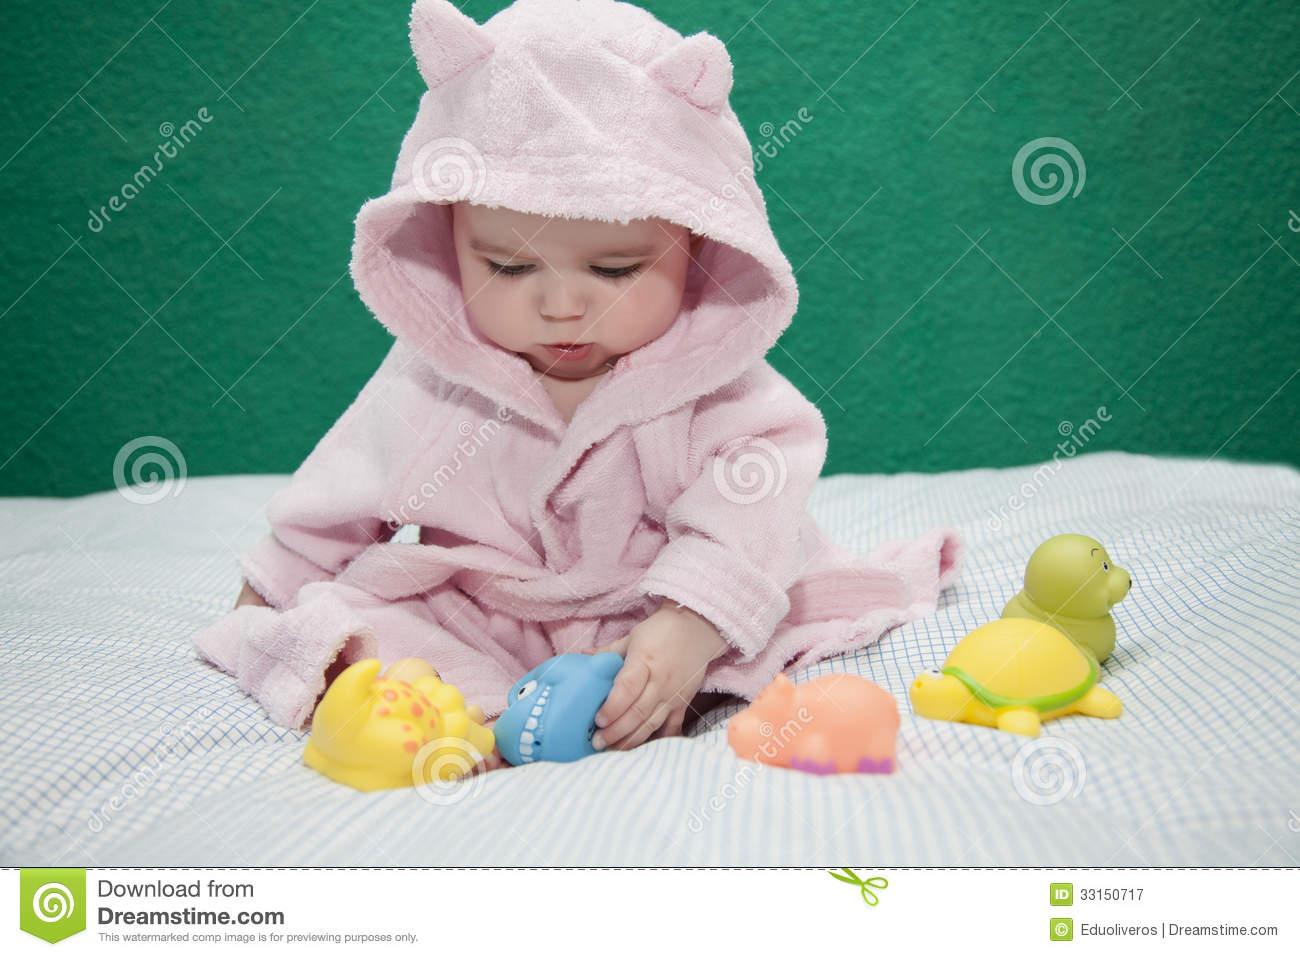 Baby playing with bathrobe